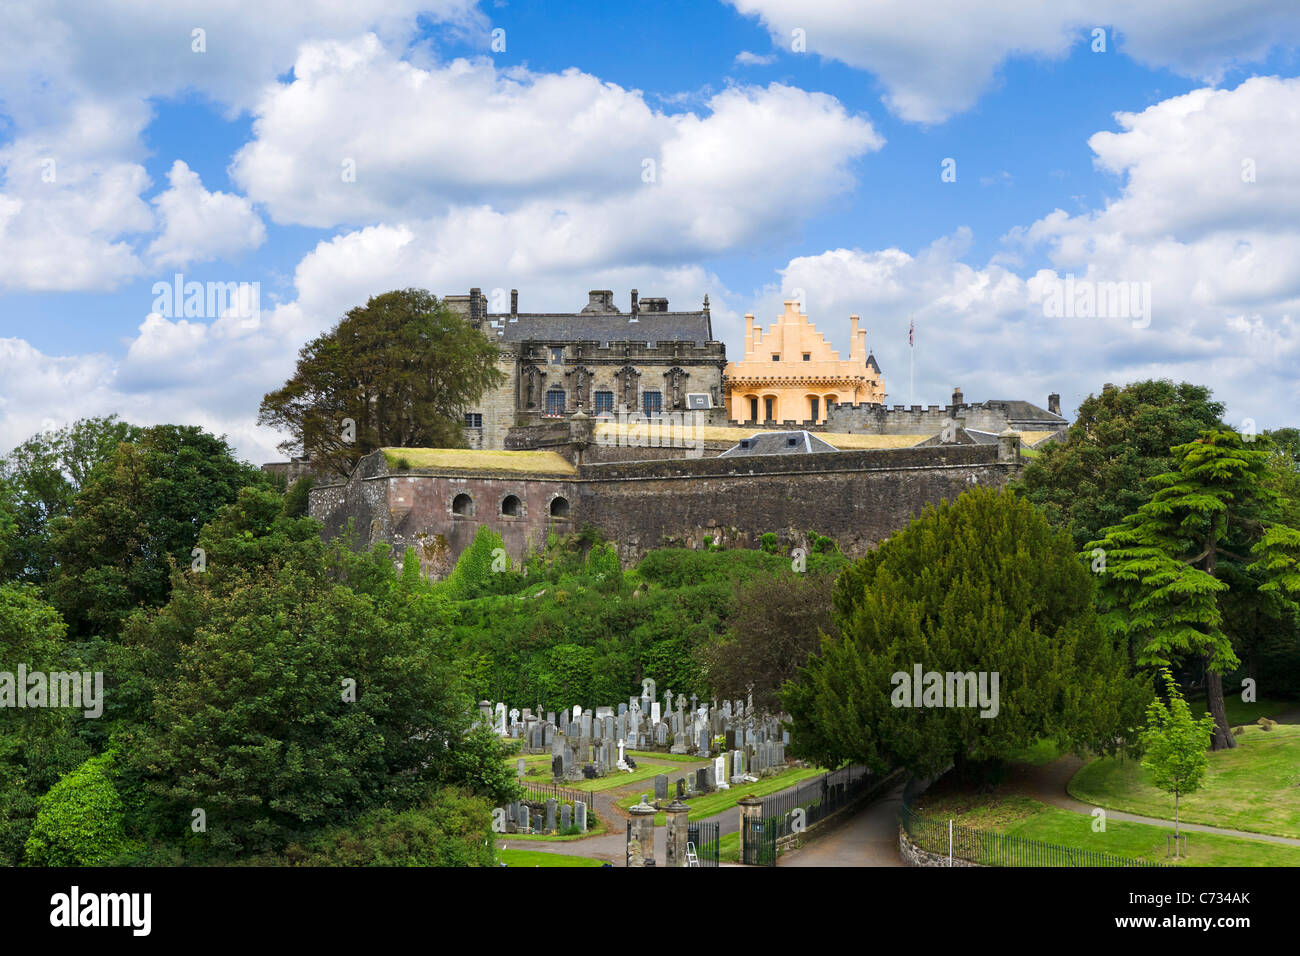 Stirling Castle viewed from the Church of the Holy Rude, showing the controversially painted Great Hall, Stirling, Scotland, UK Stock Photo